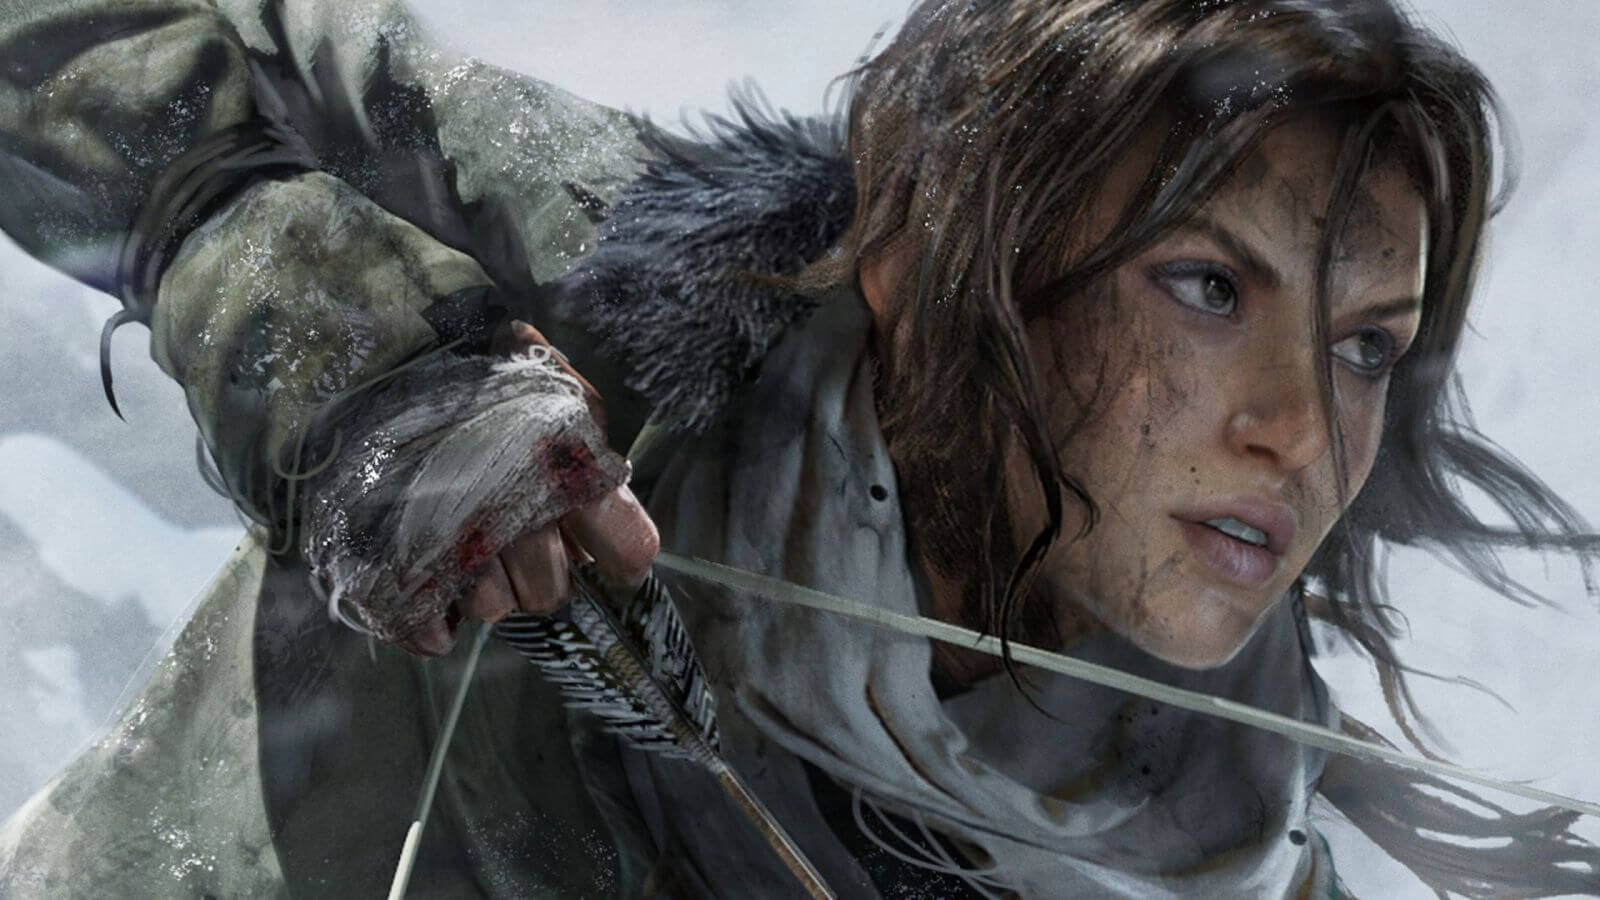 riseo of tomb raider para ps4 - Square Enix anuncia Rise of Tomb Raider para PlayStation 4, mas só em 2016